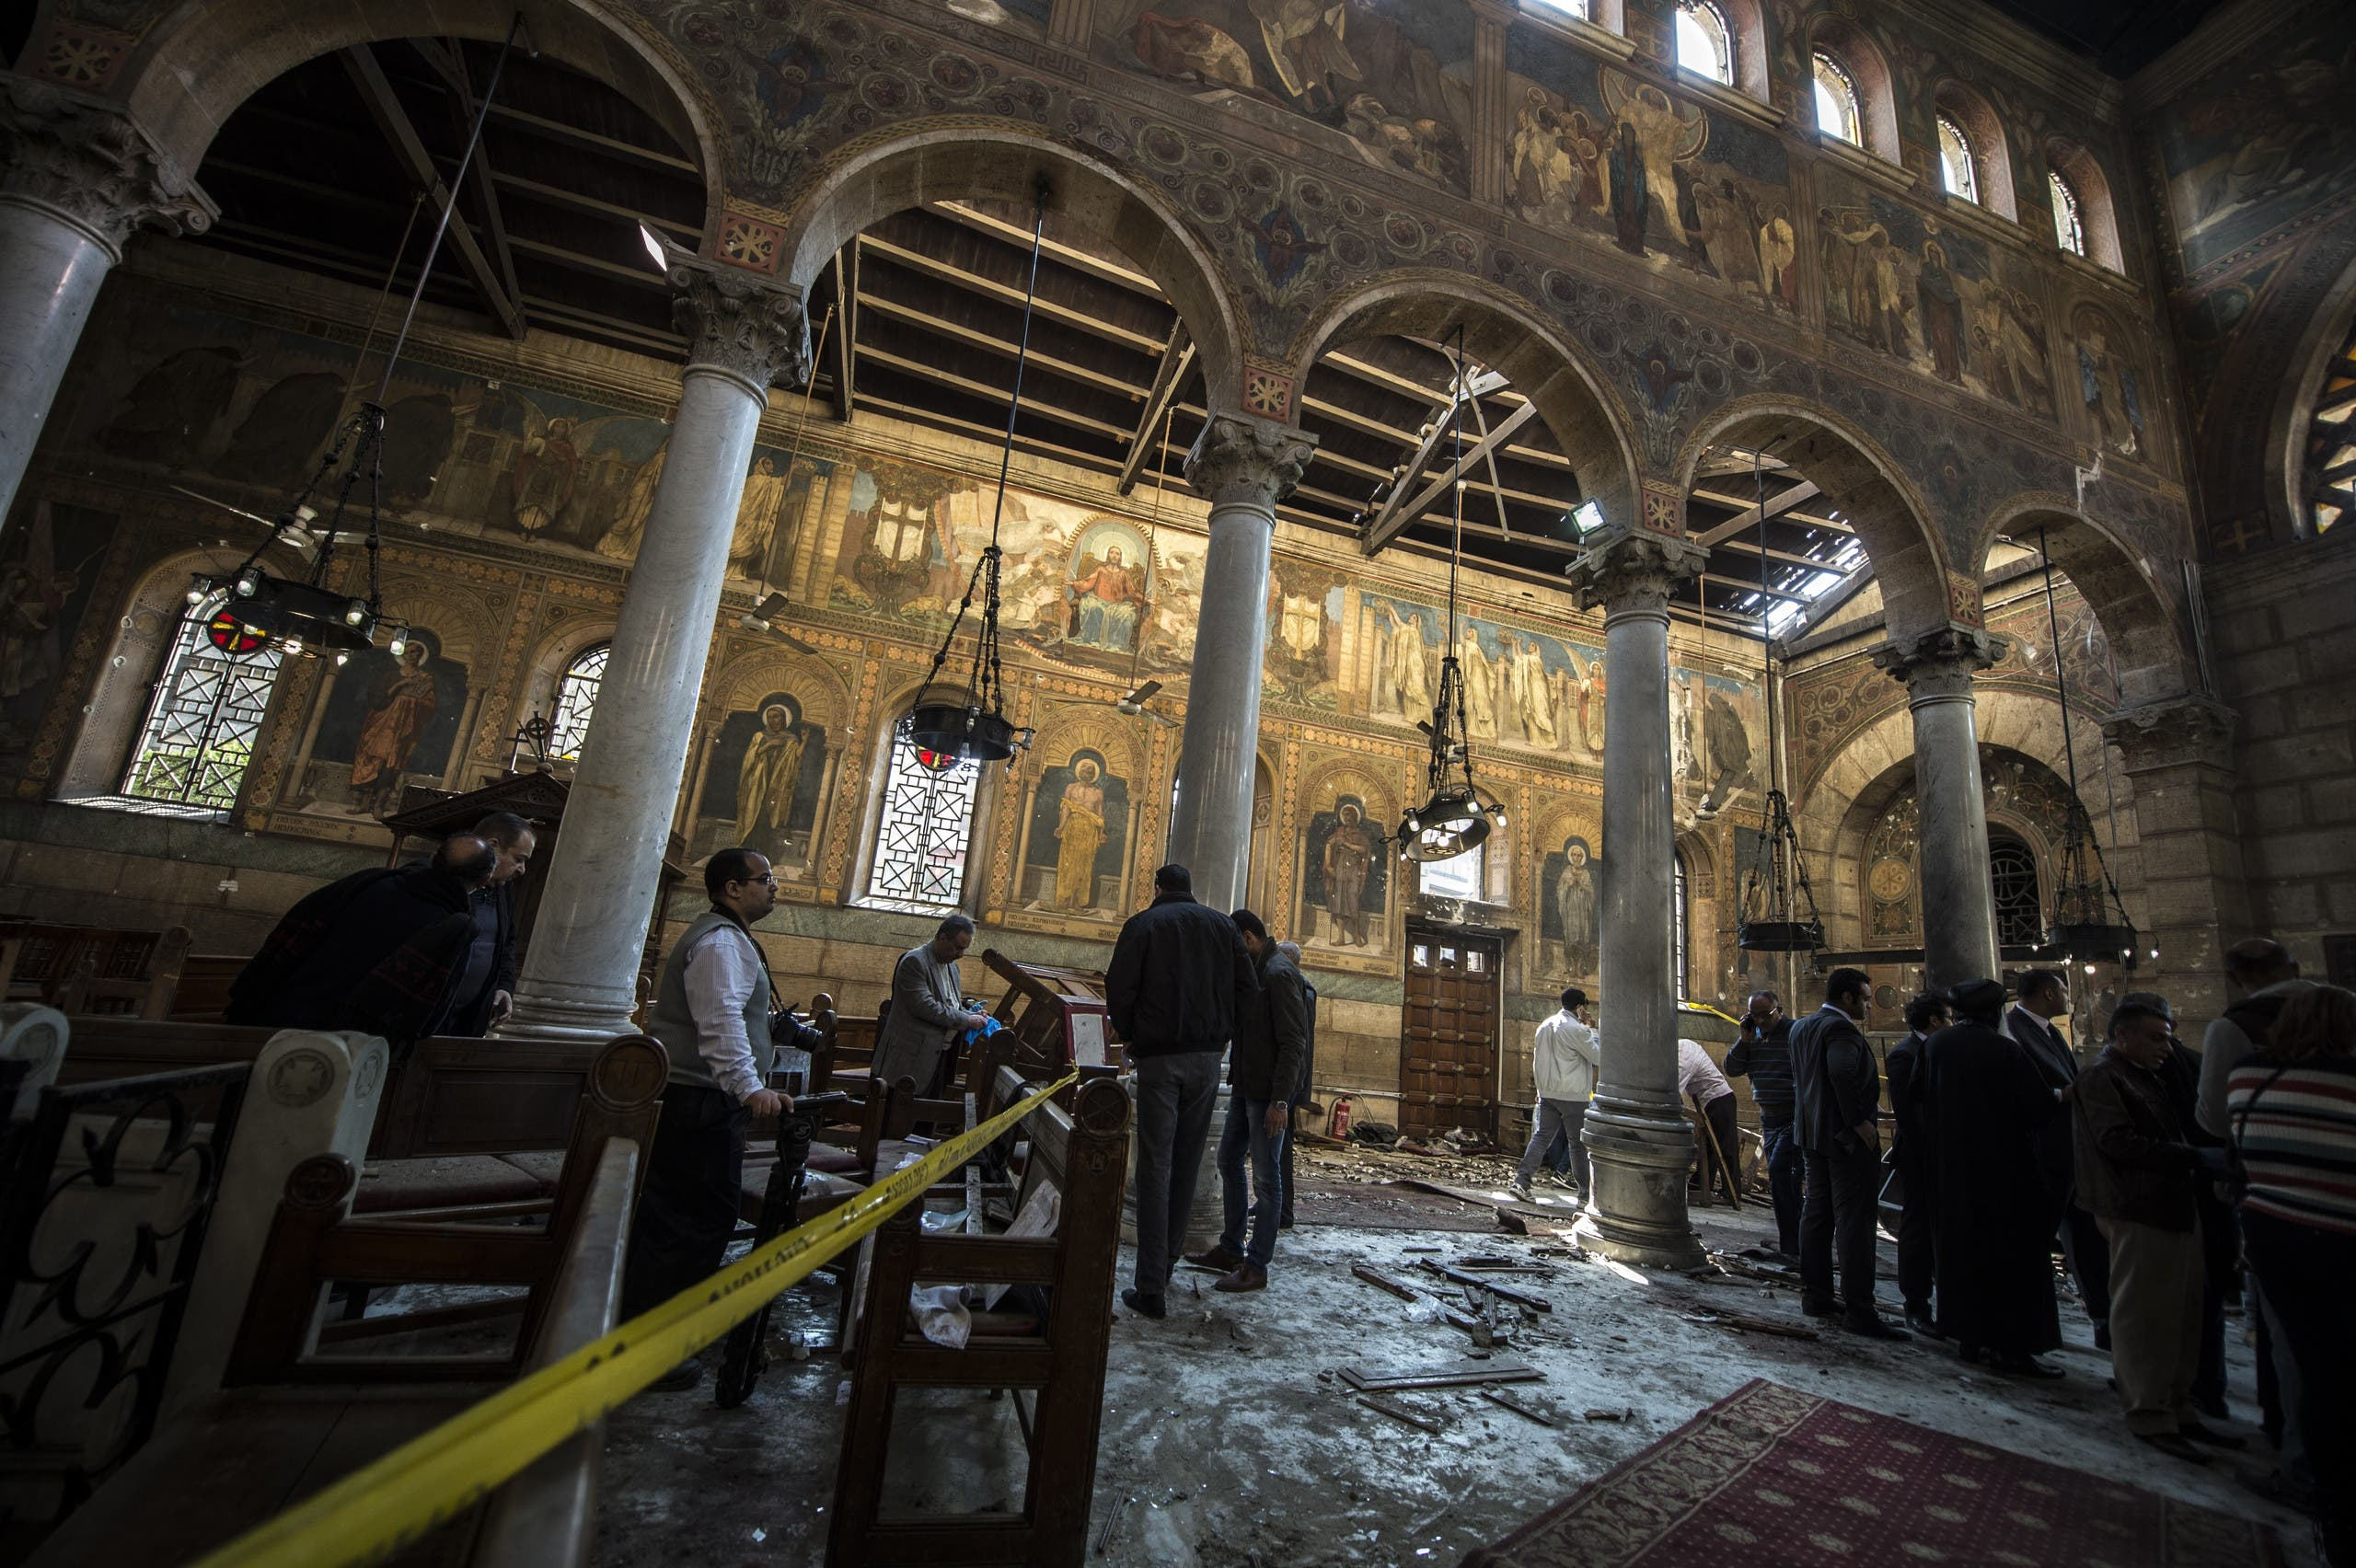 Egyptian security forces and members of the clergy inspect the scene of a bomb explosion at the Saint Peter and Saint Paul Coptic Orthodox Church on December 11, 2016, in Cairo's Abbasiya neighbourhood. AFP